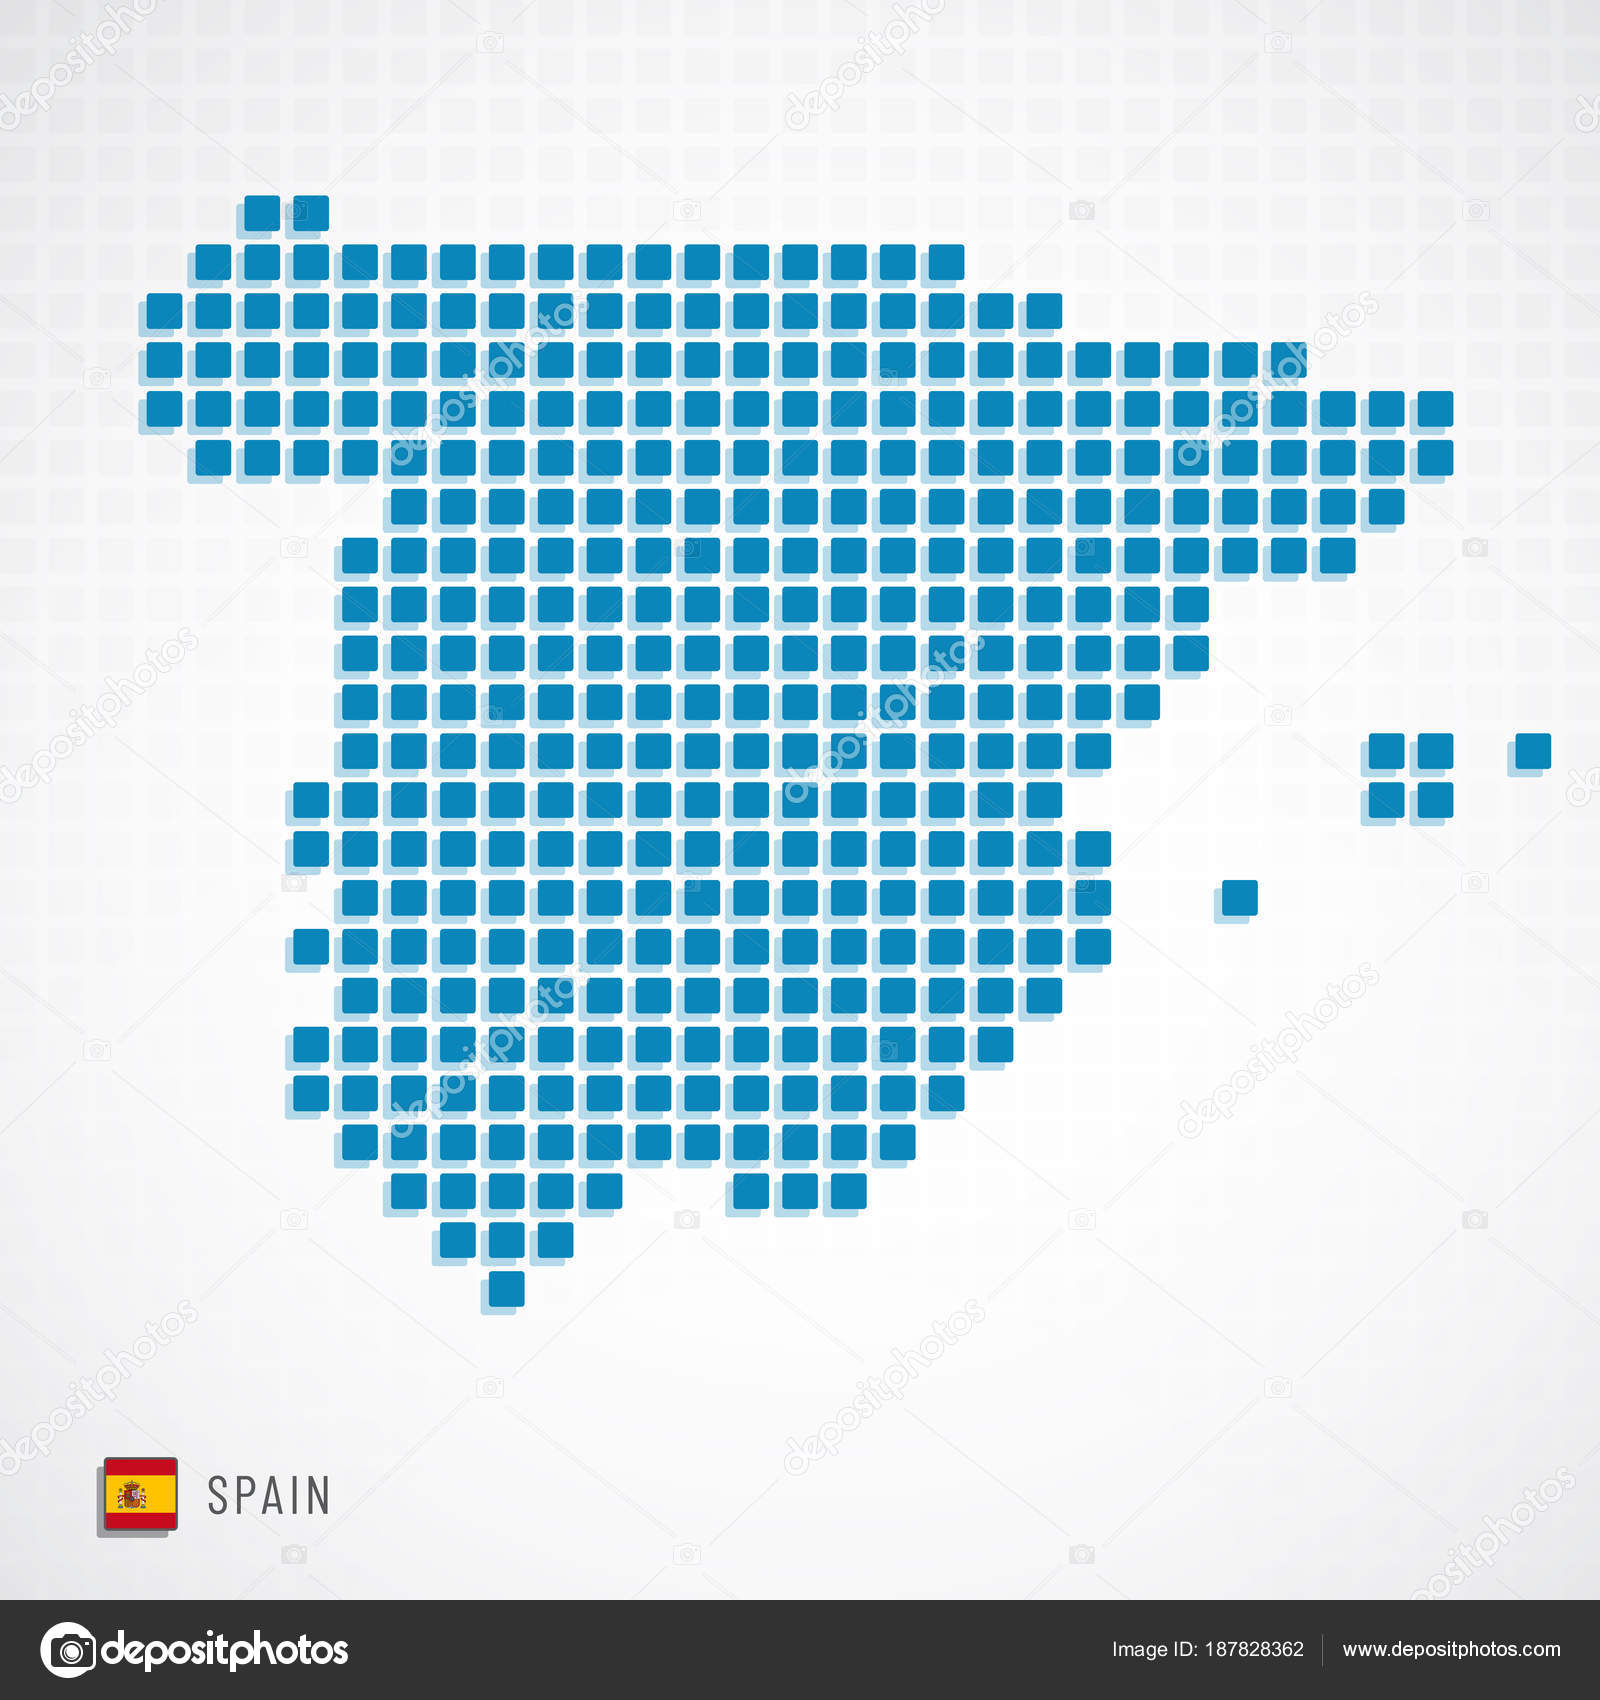 Spain Map Flag.Spain Map And Flag Icon Stock Vector C Kerdazz7 187828362